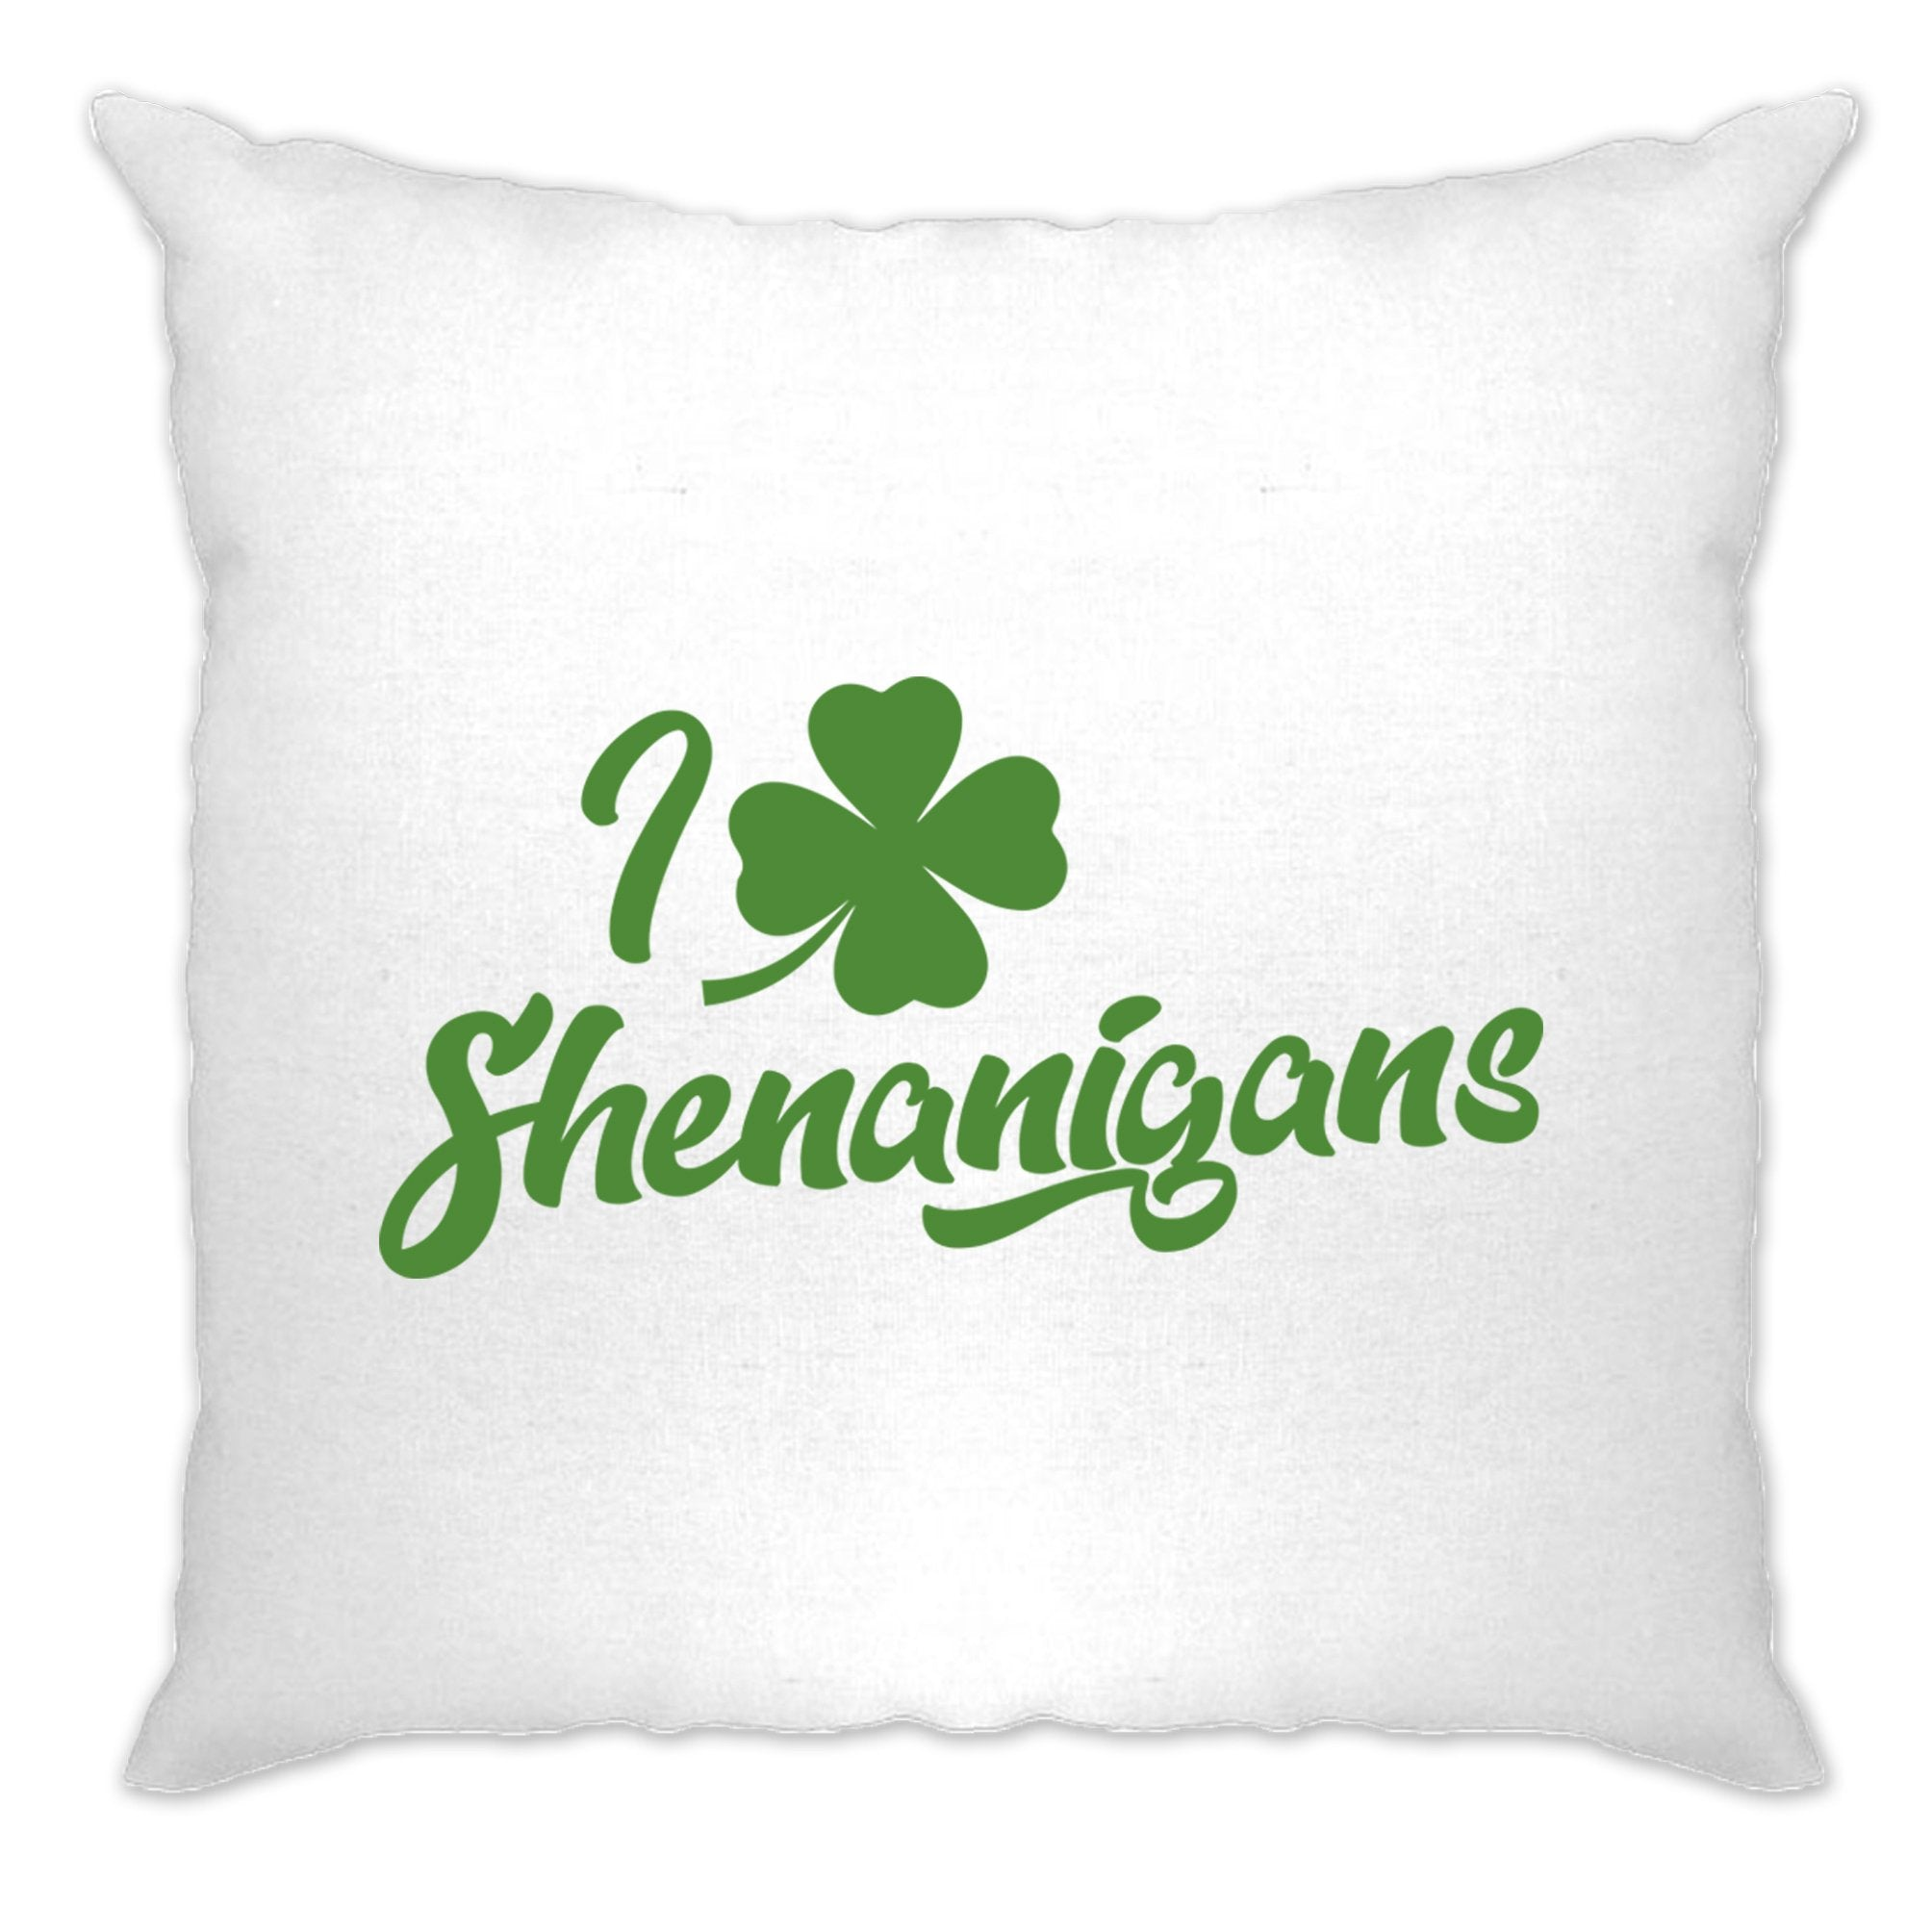 Novelty St Patricks Day Cushion Cover I Love Shenanigans